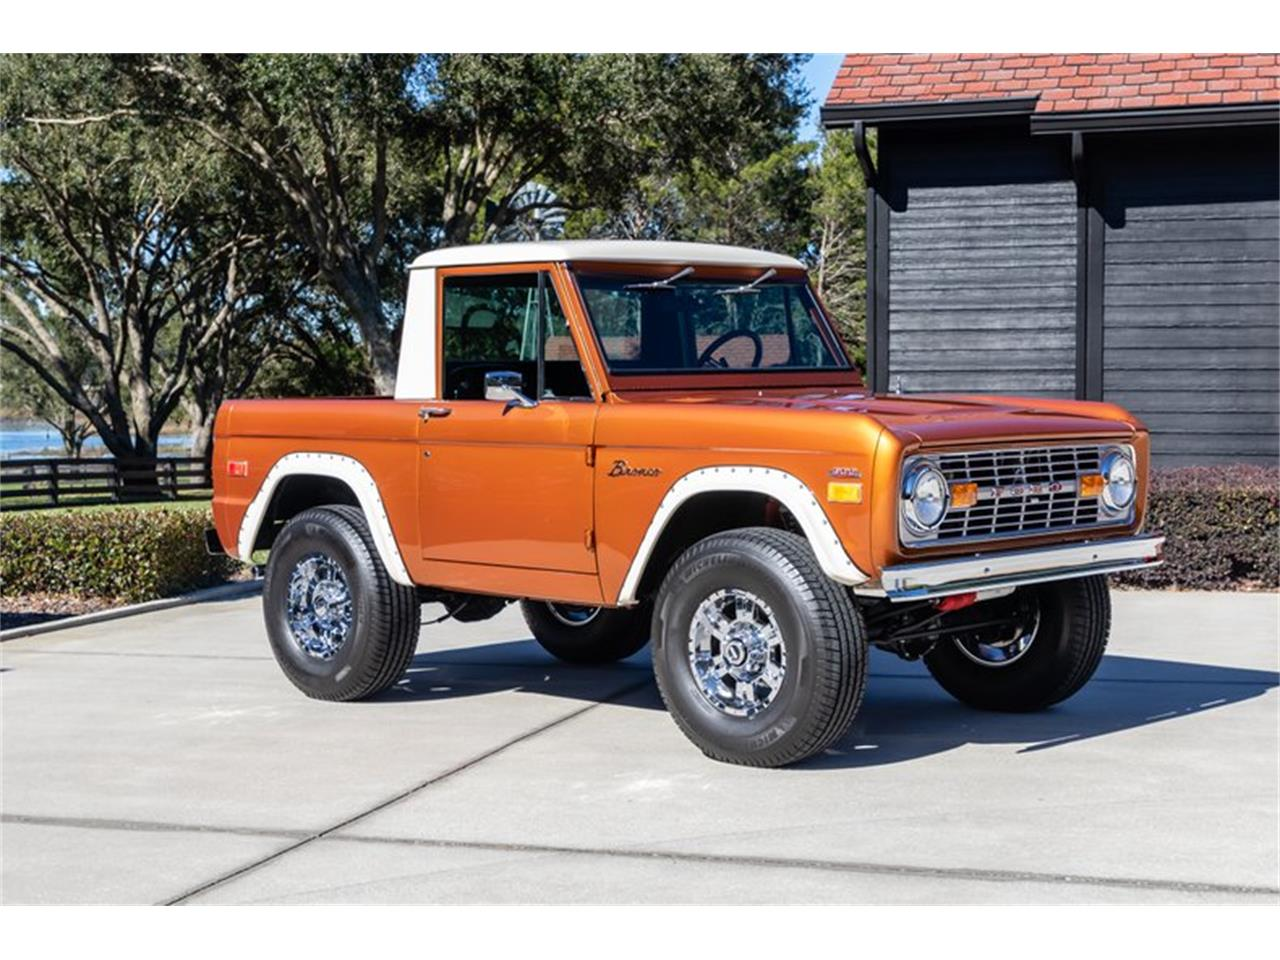 Large Picture of 1976 Ford Bronco Auction Vehicle Offered by GAA Classic Cars Auctions - Q8U3